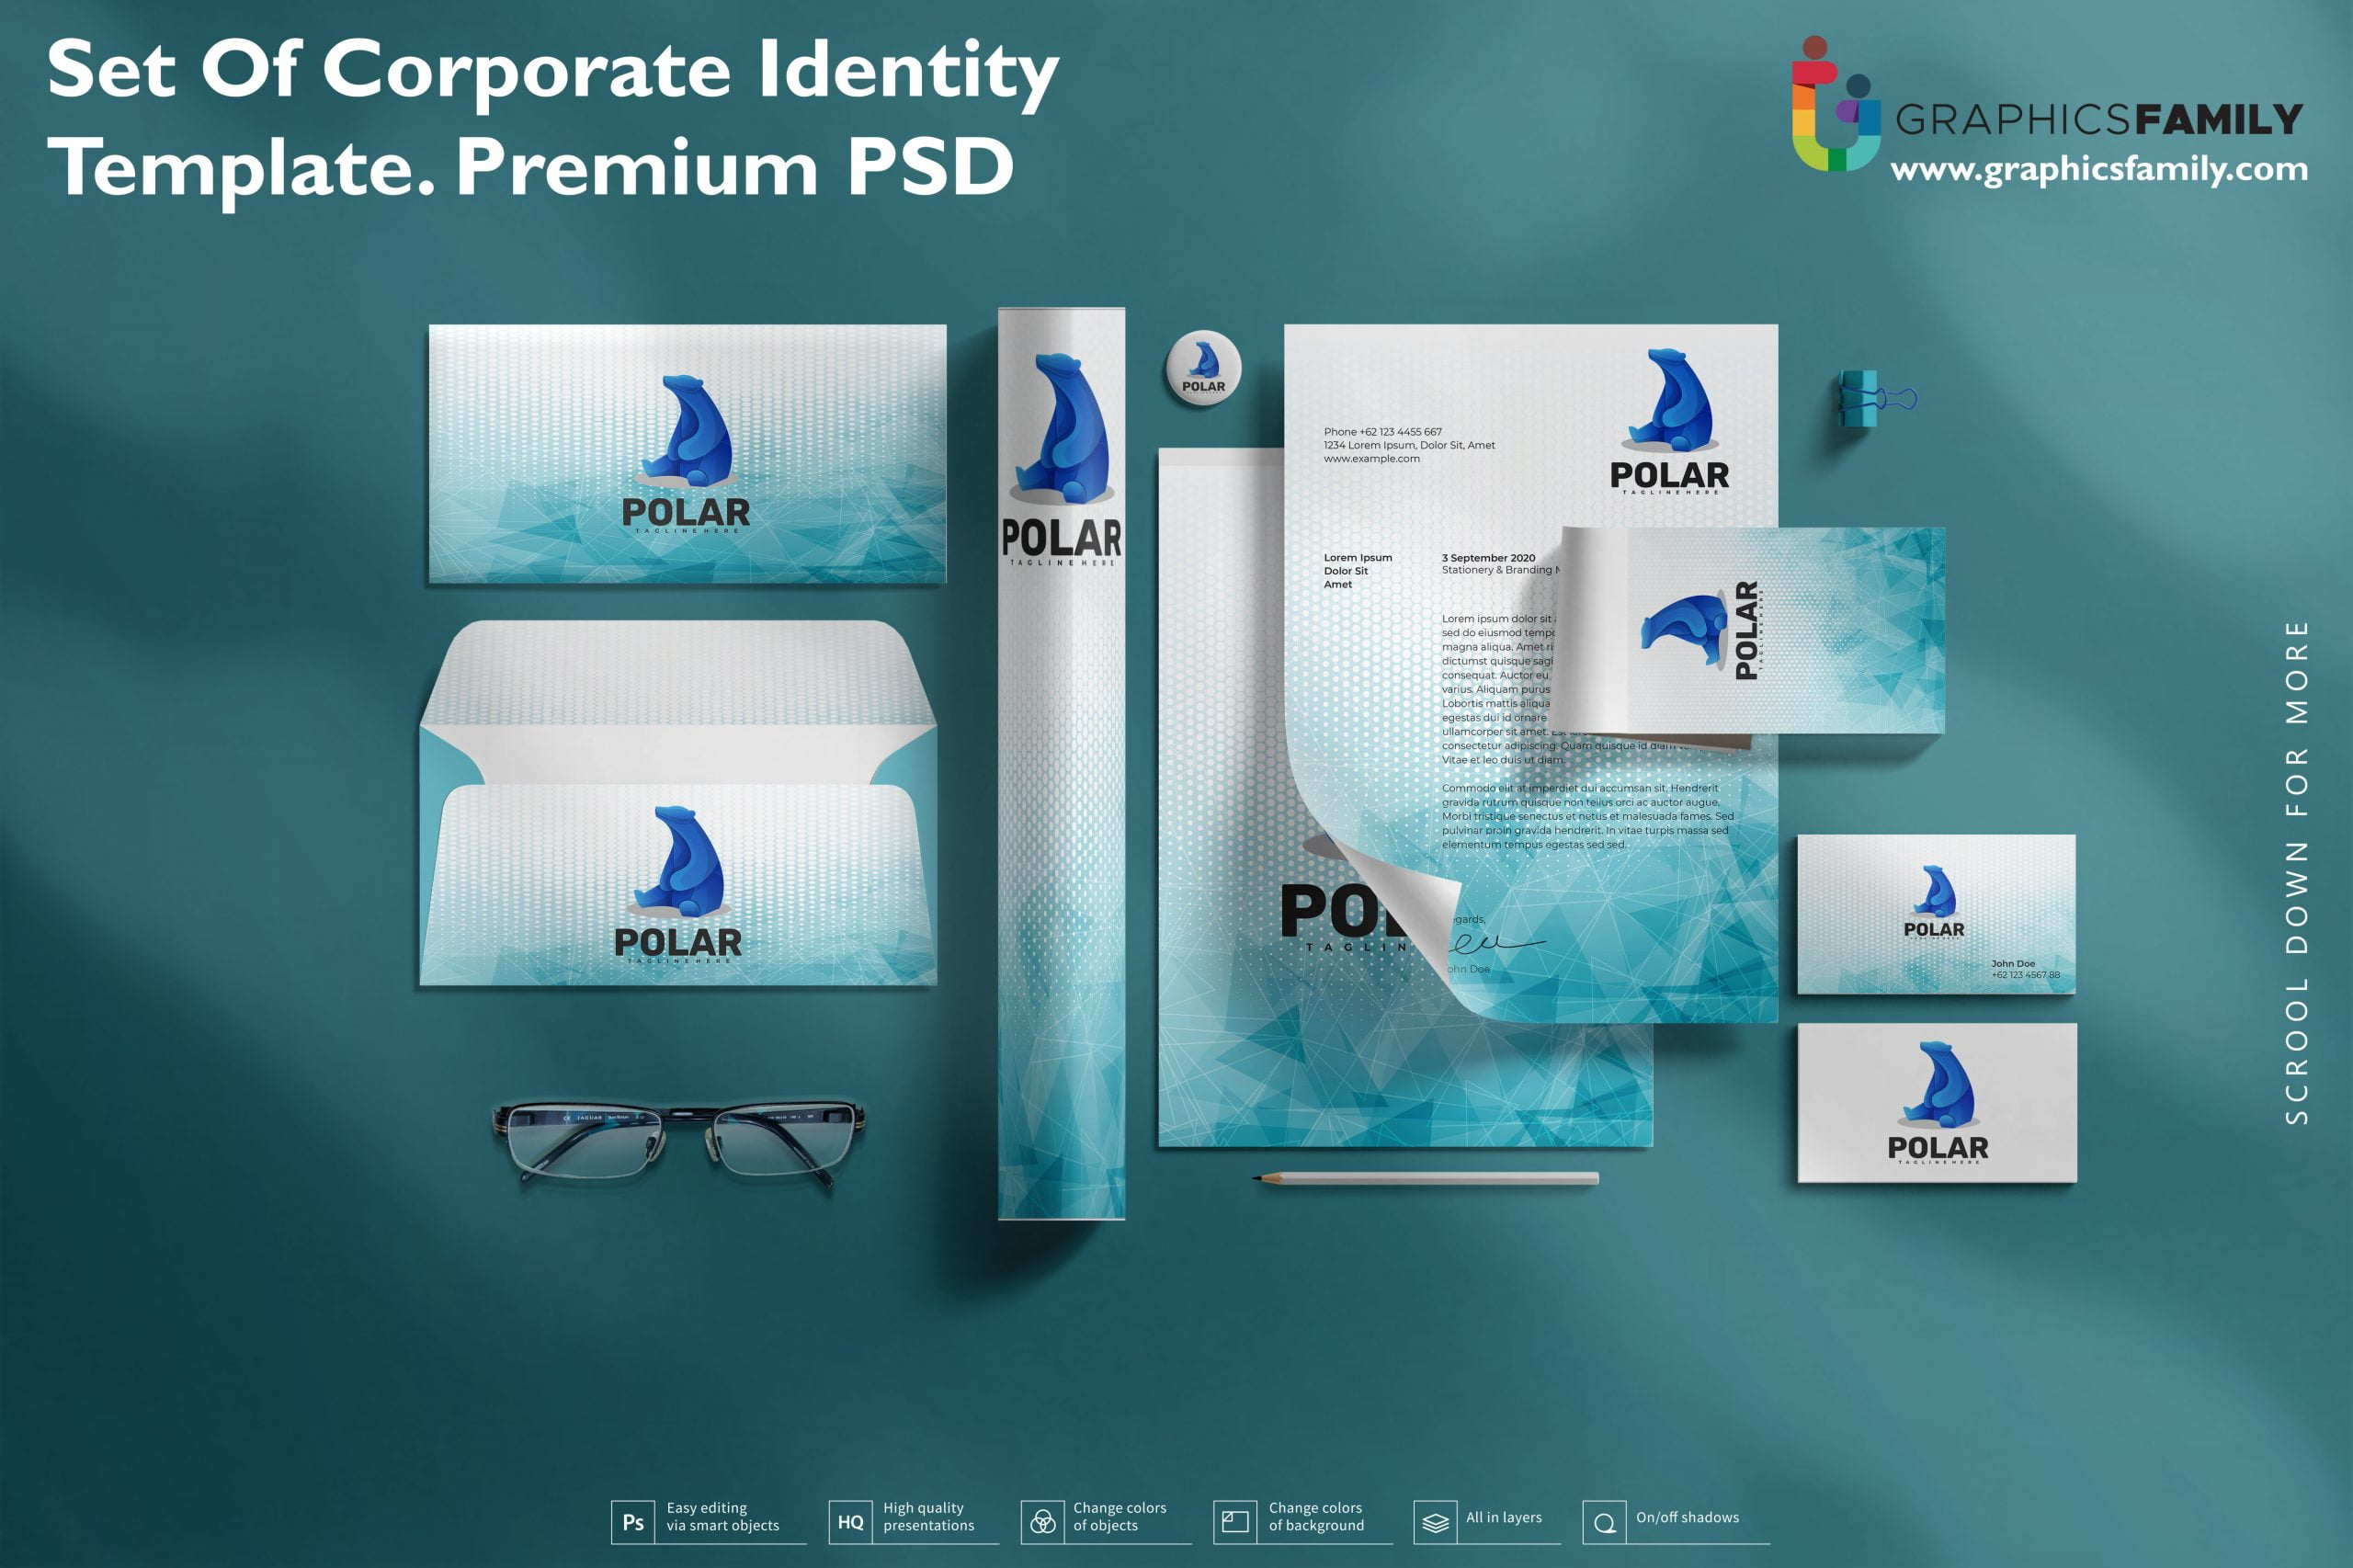 Set of Corporate Identity Template Premium Quality PSD Download